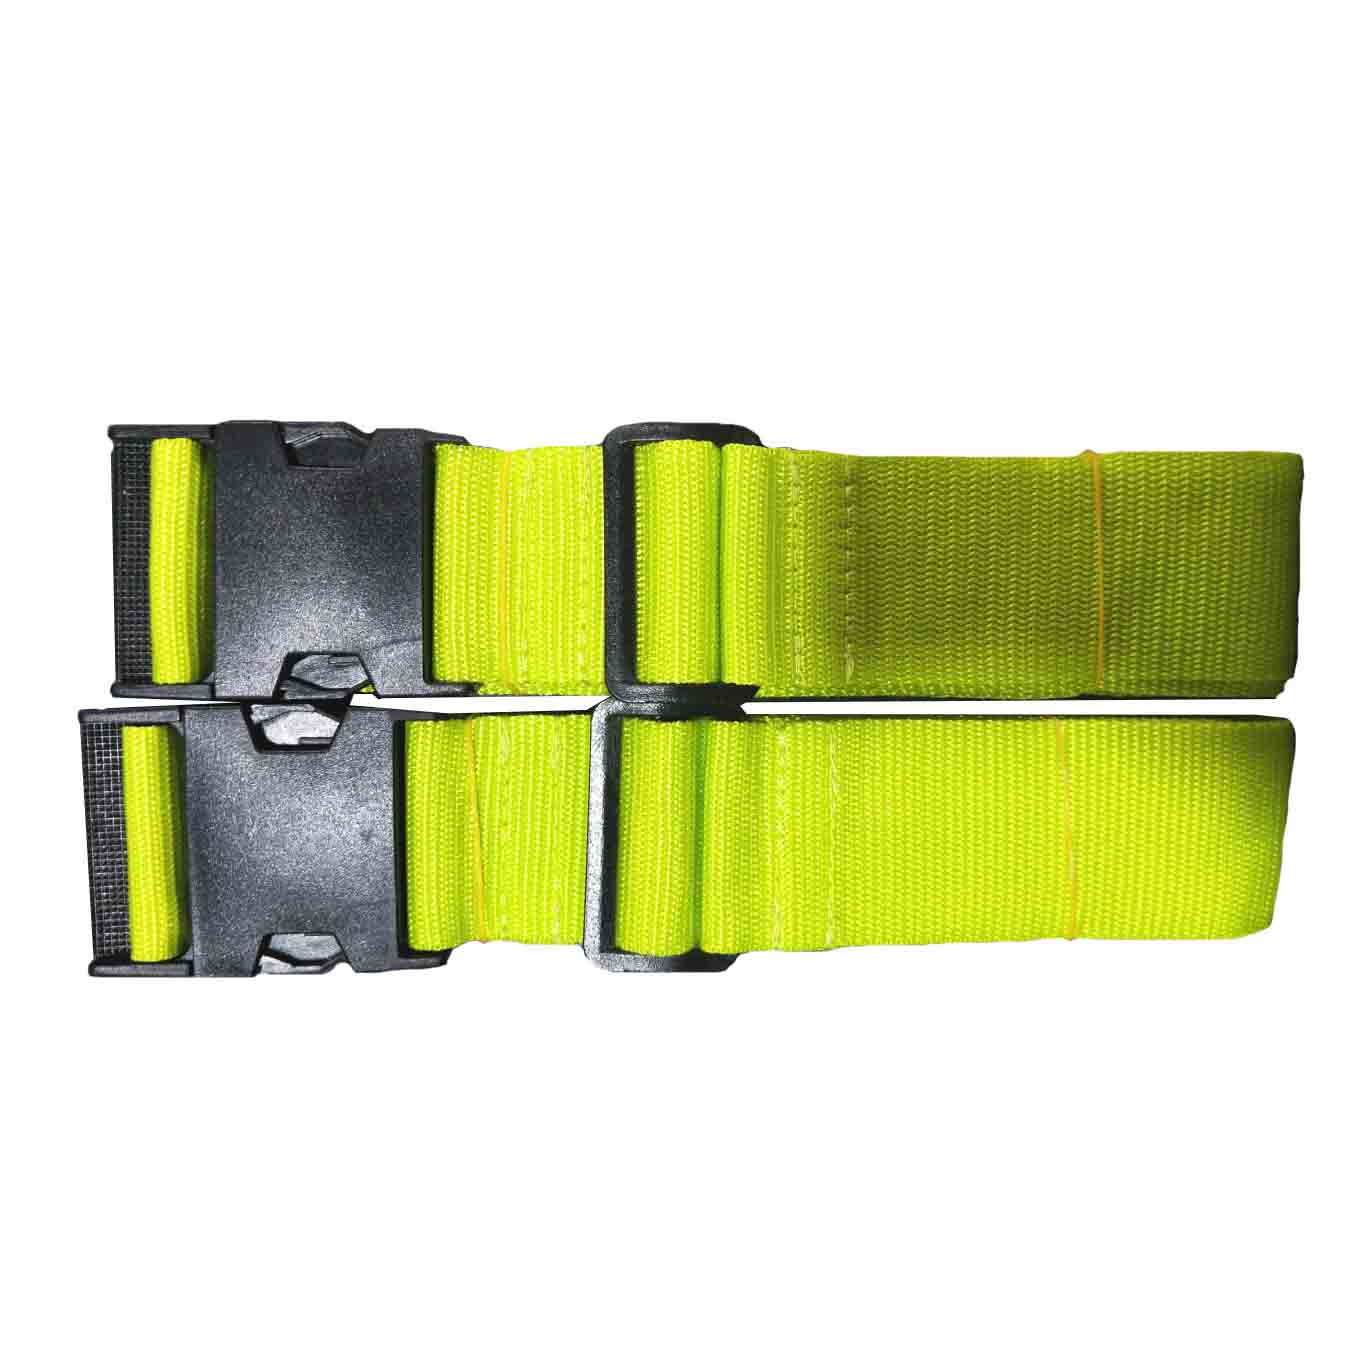 Pack of 2 Green Suitcase Luggage Travel Straps Belts Fasteners